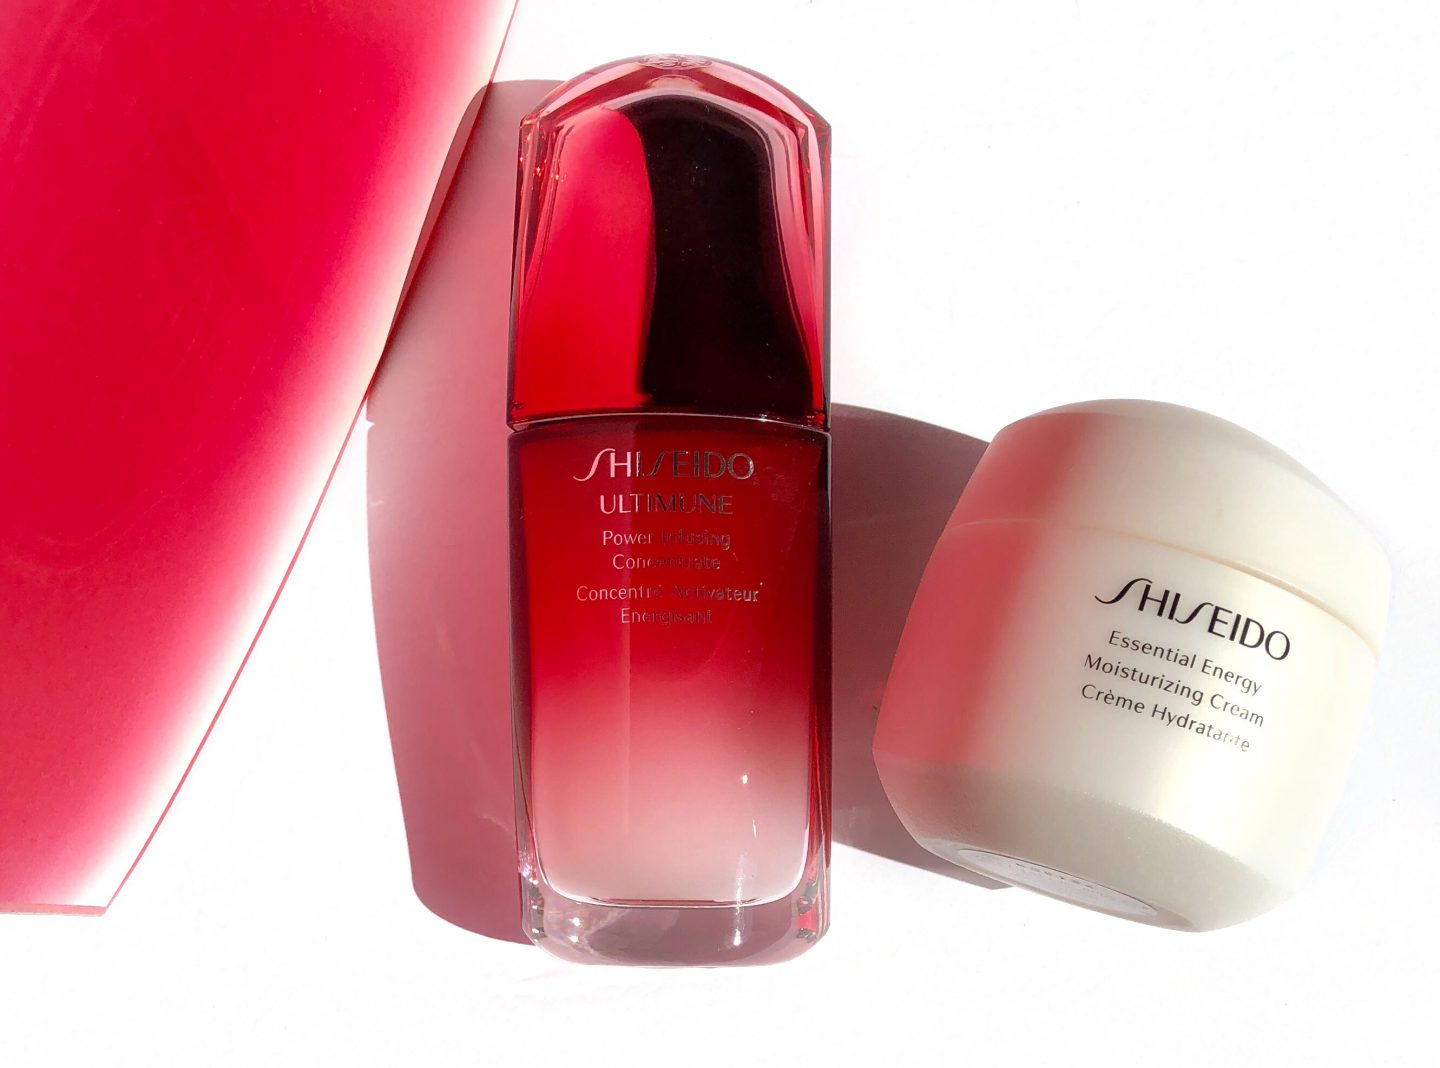 Shiseido Ultimune Power Infusing Concentrate and Day Creme